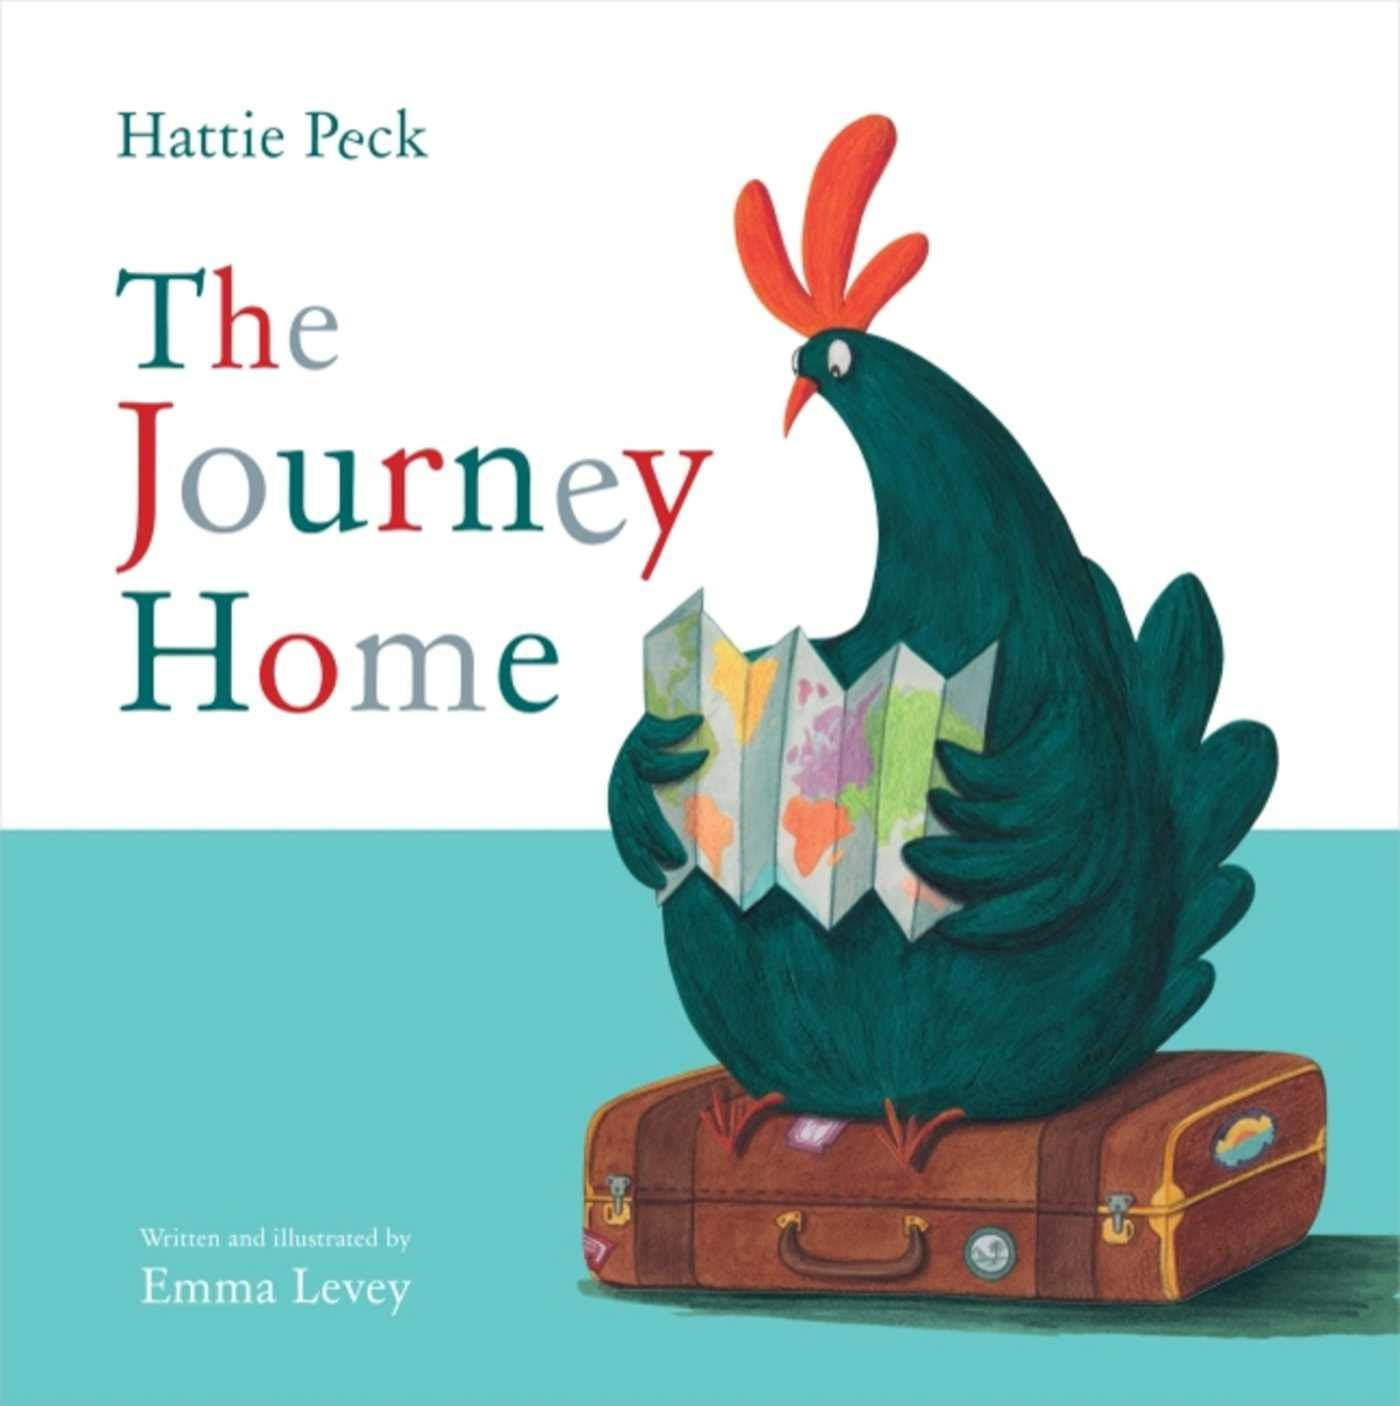 Image result for the journey home hattie peck